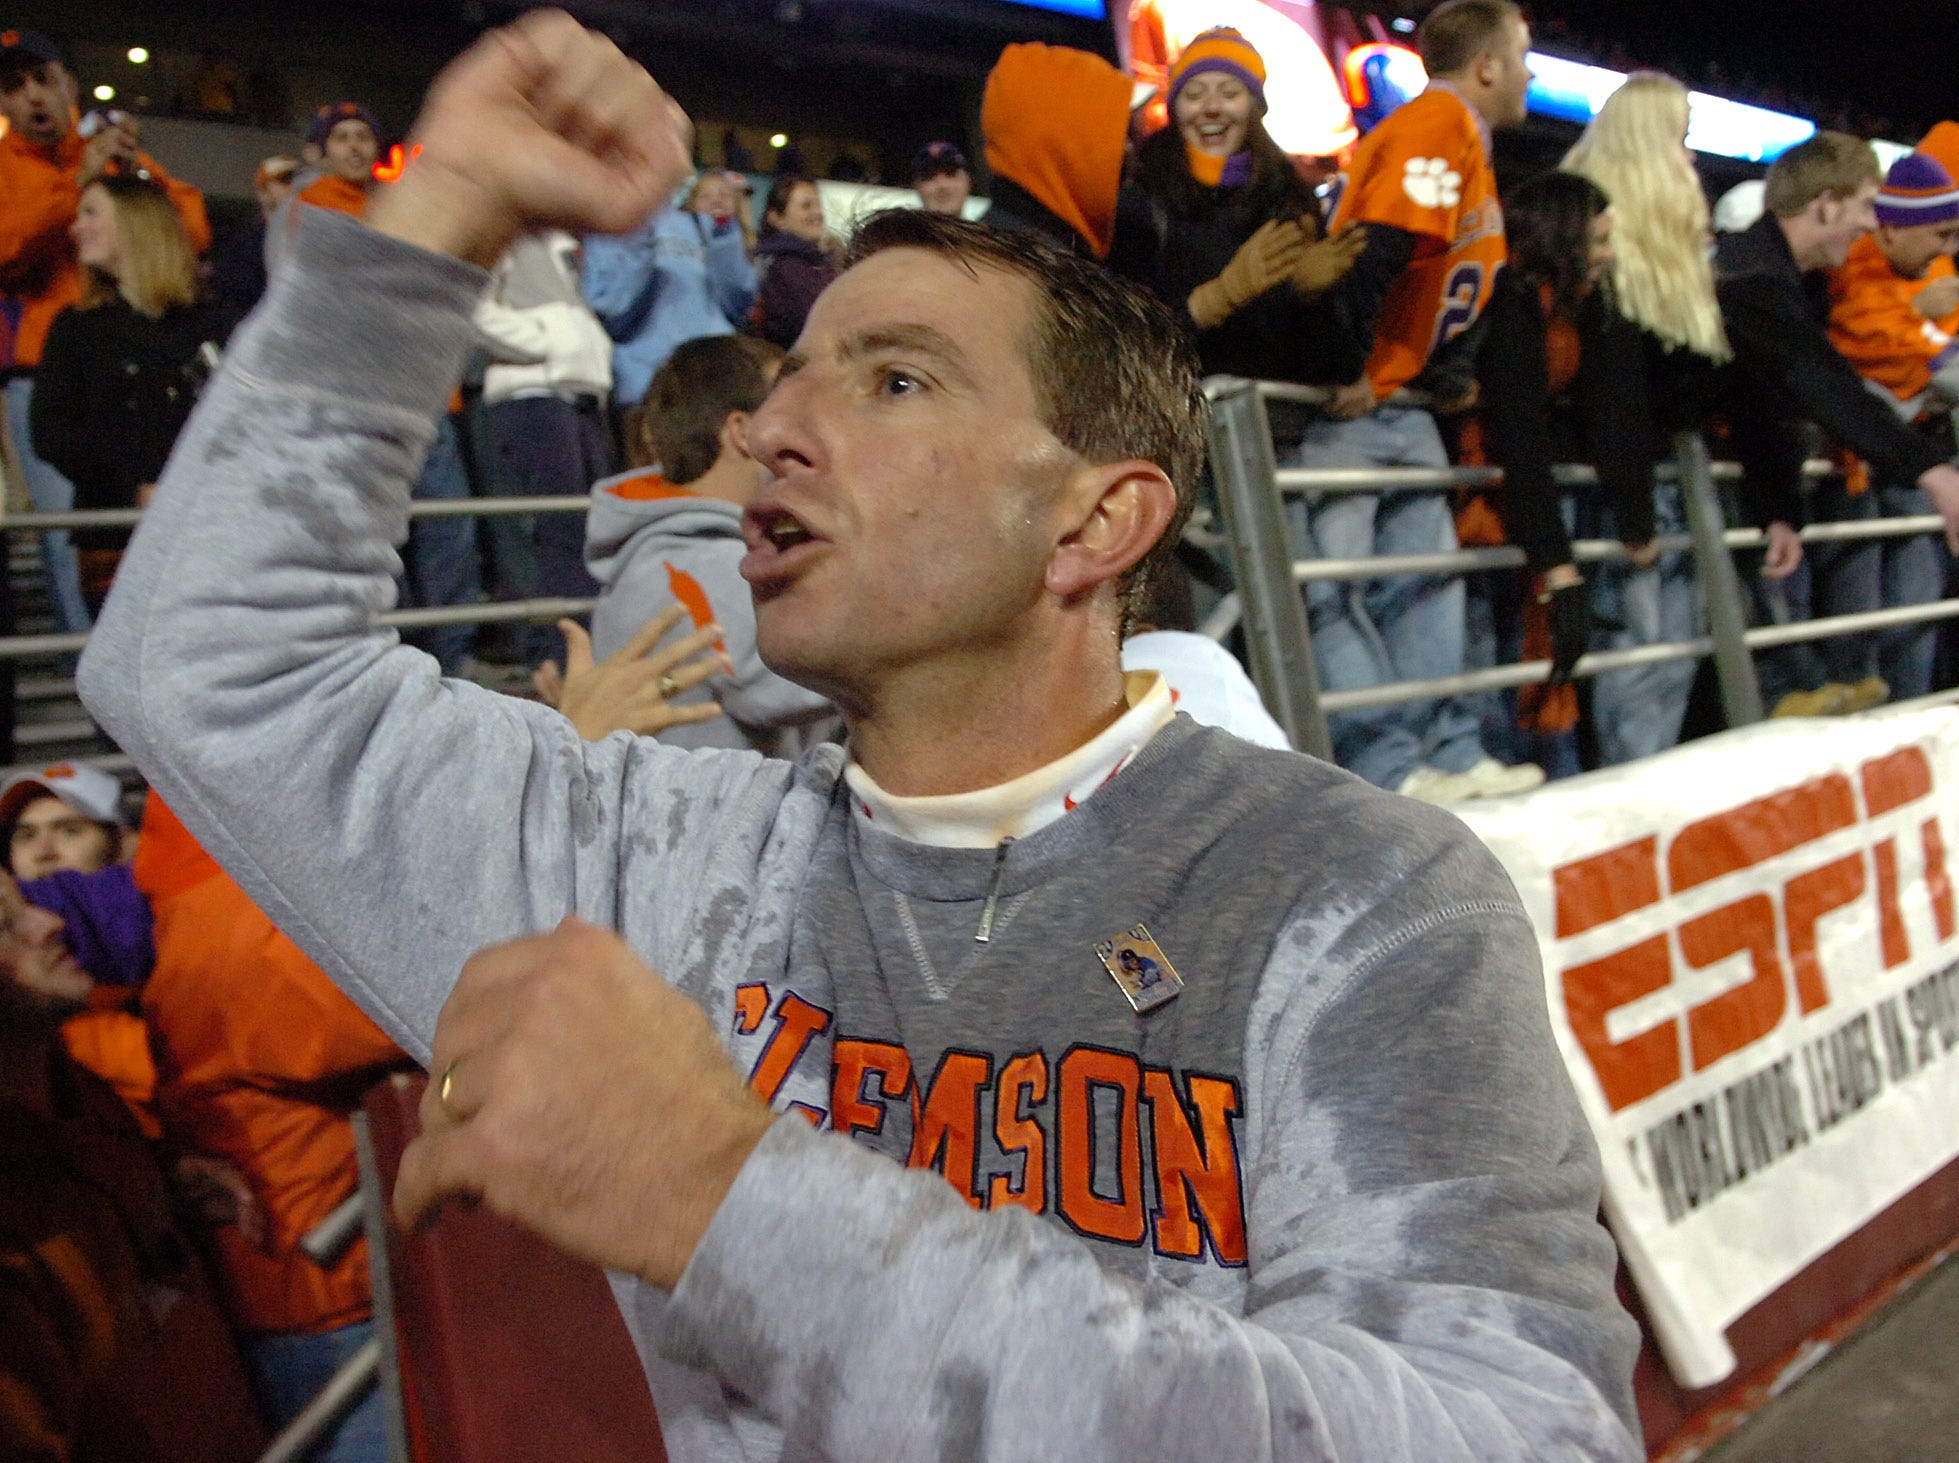 Clemson fans celebrate with qinterim head coach Dabo Swinney after the Tigers defeated Boston College 27-21Saturday, Nov. 1st, 2008 at Alumni Stadium in Chestnut Hill, Mass. Spiller was game MVP.